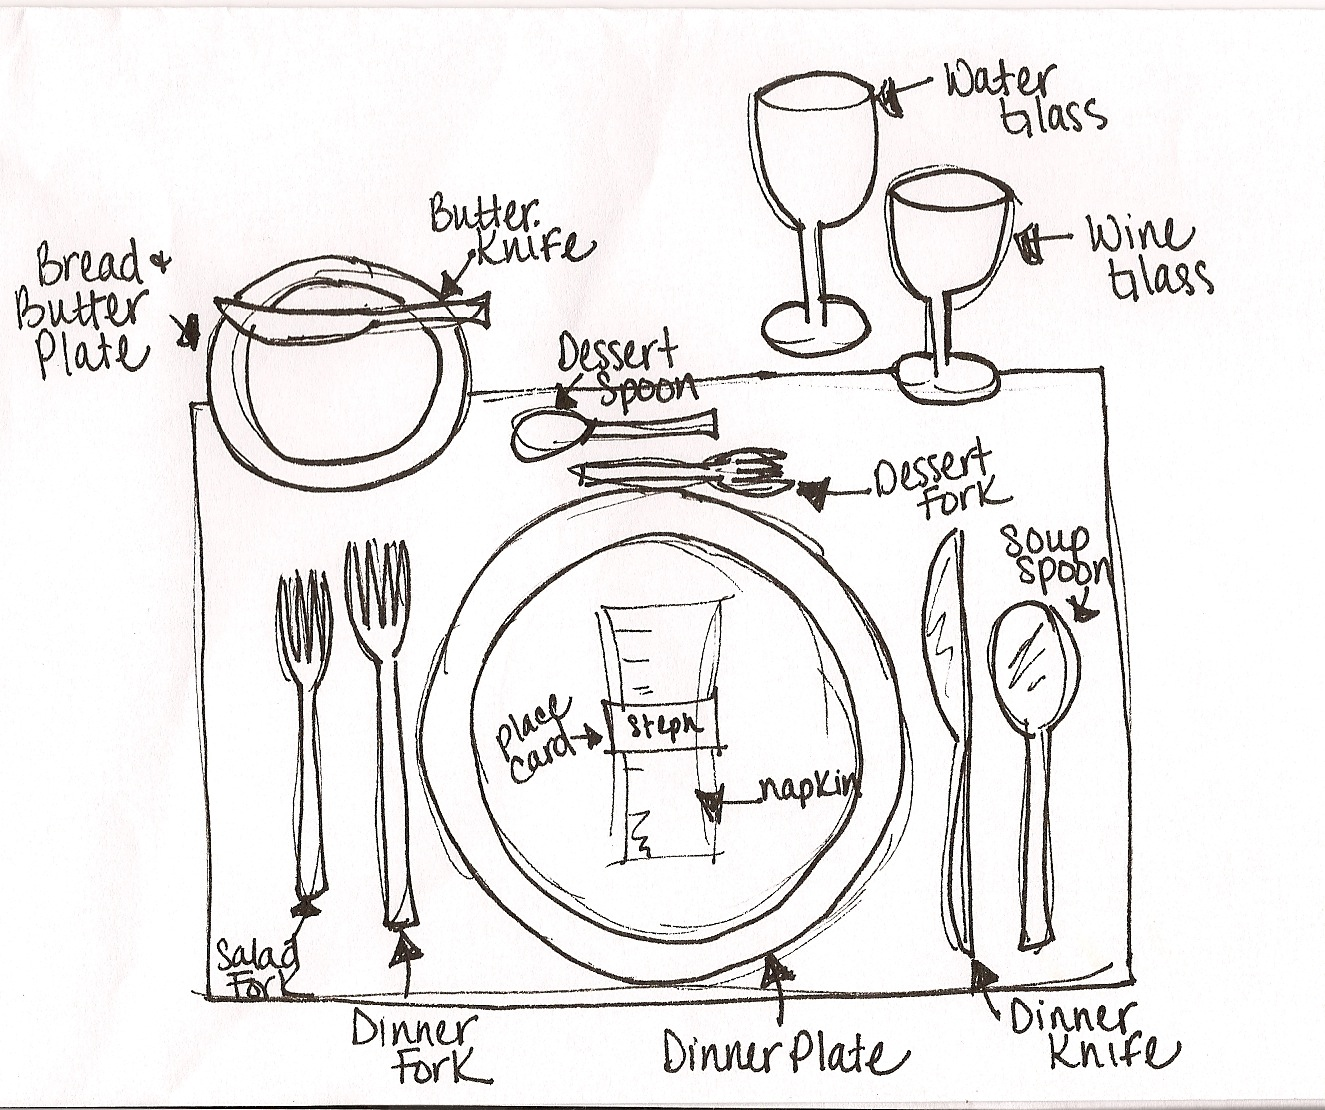 Formal dinner table setting etiquette - Step 1 Put Down A Plate Bread Butter Plate Needs To Be Placed